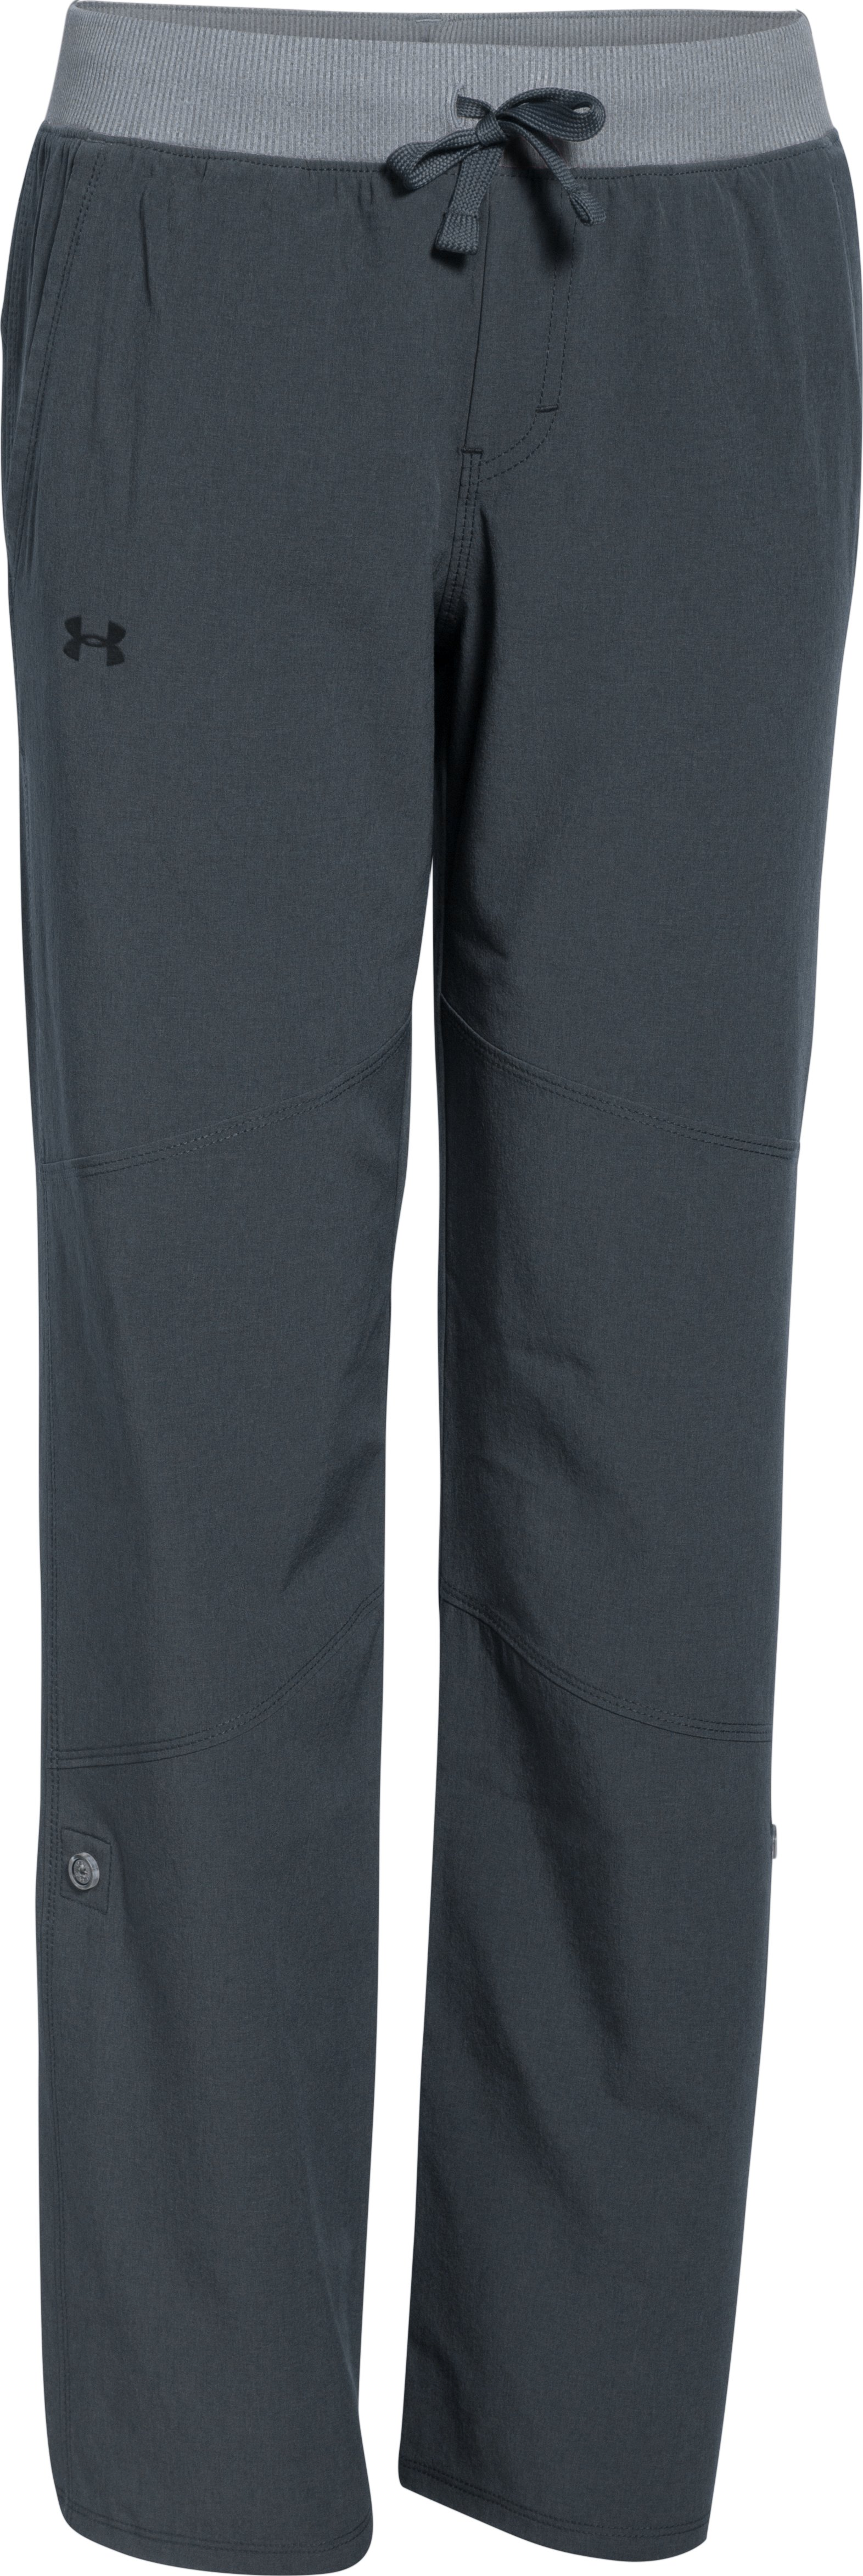 Girls' UA Premiere Woven Pants, STEALTH GRAY, undefined